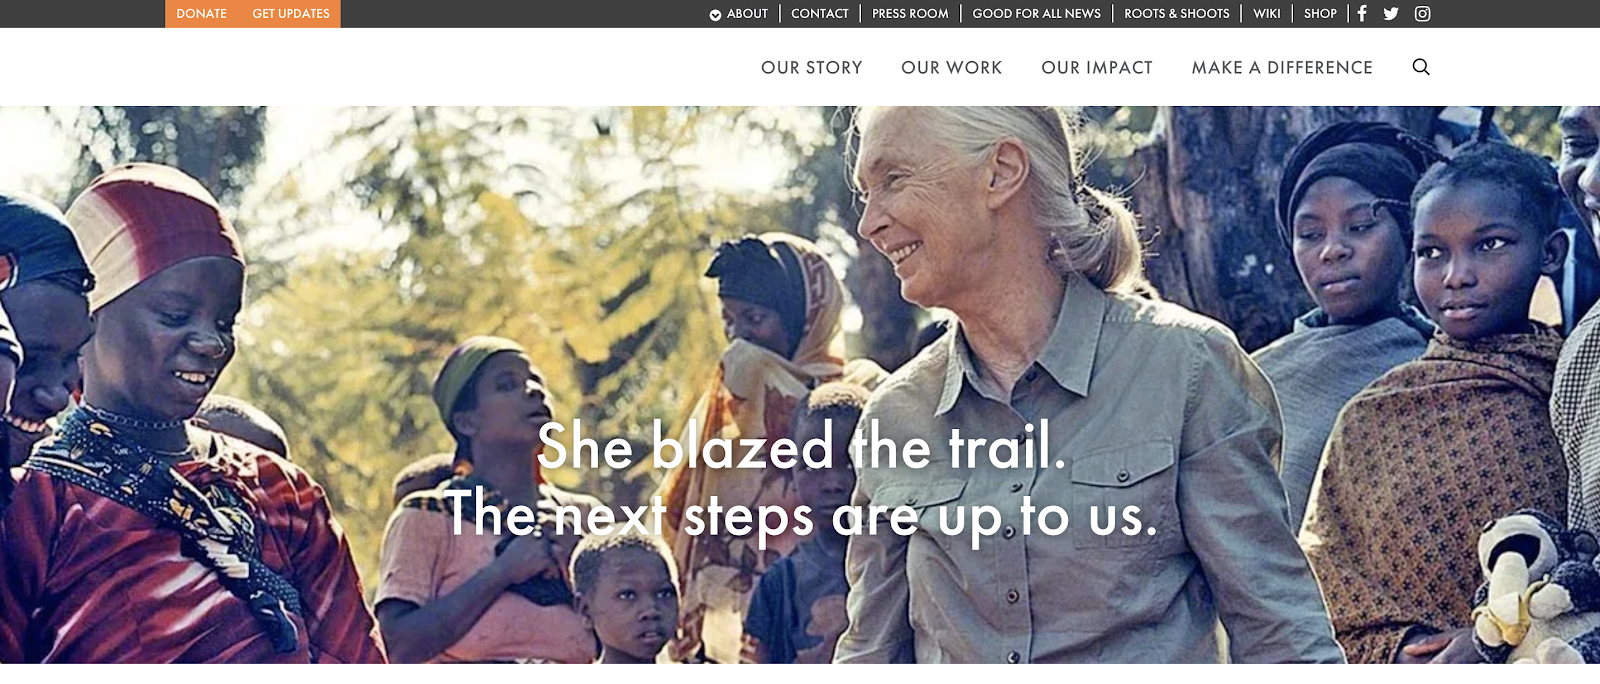 Self-Hosted Free Blog Site WordPress Used by Jane Goodall